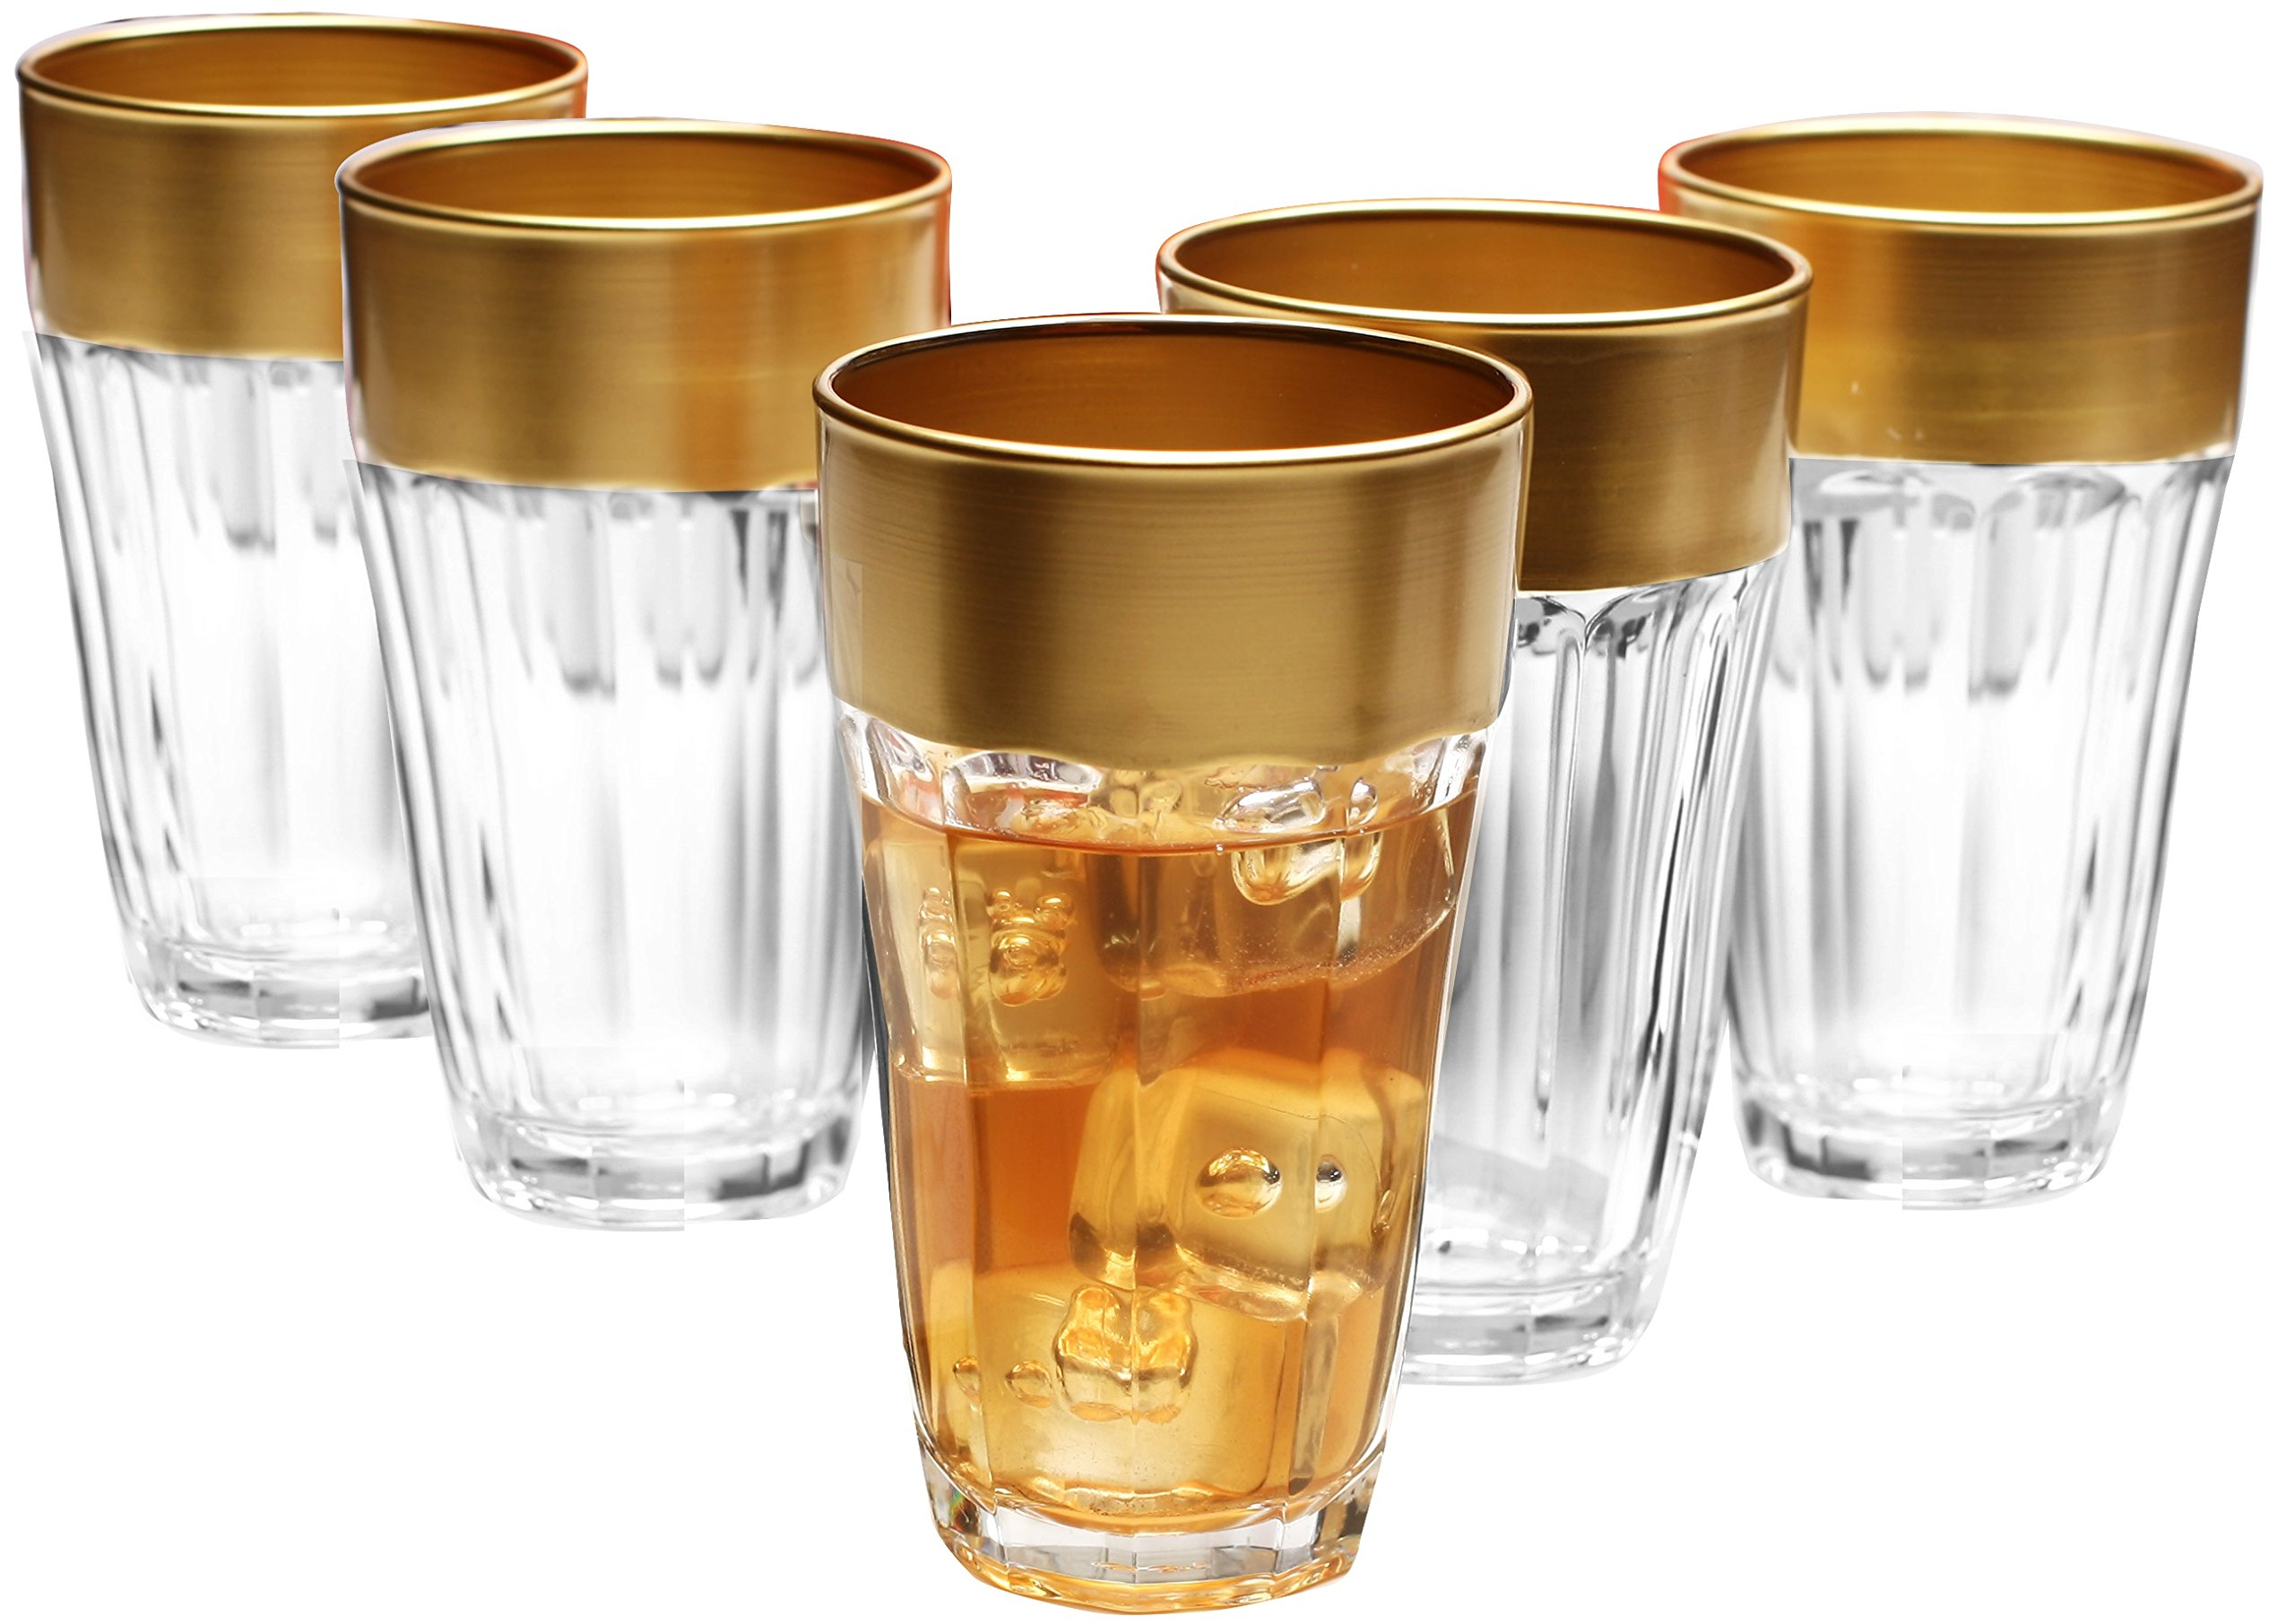 Circleware De'ore Gold Rimmed Drinking Glasses, 12 Ounce, Set of 6